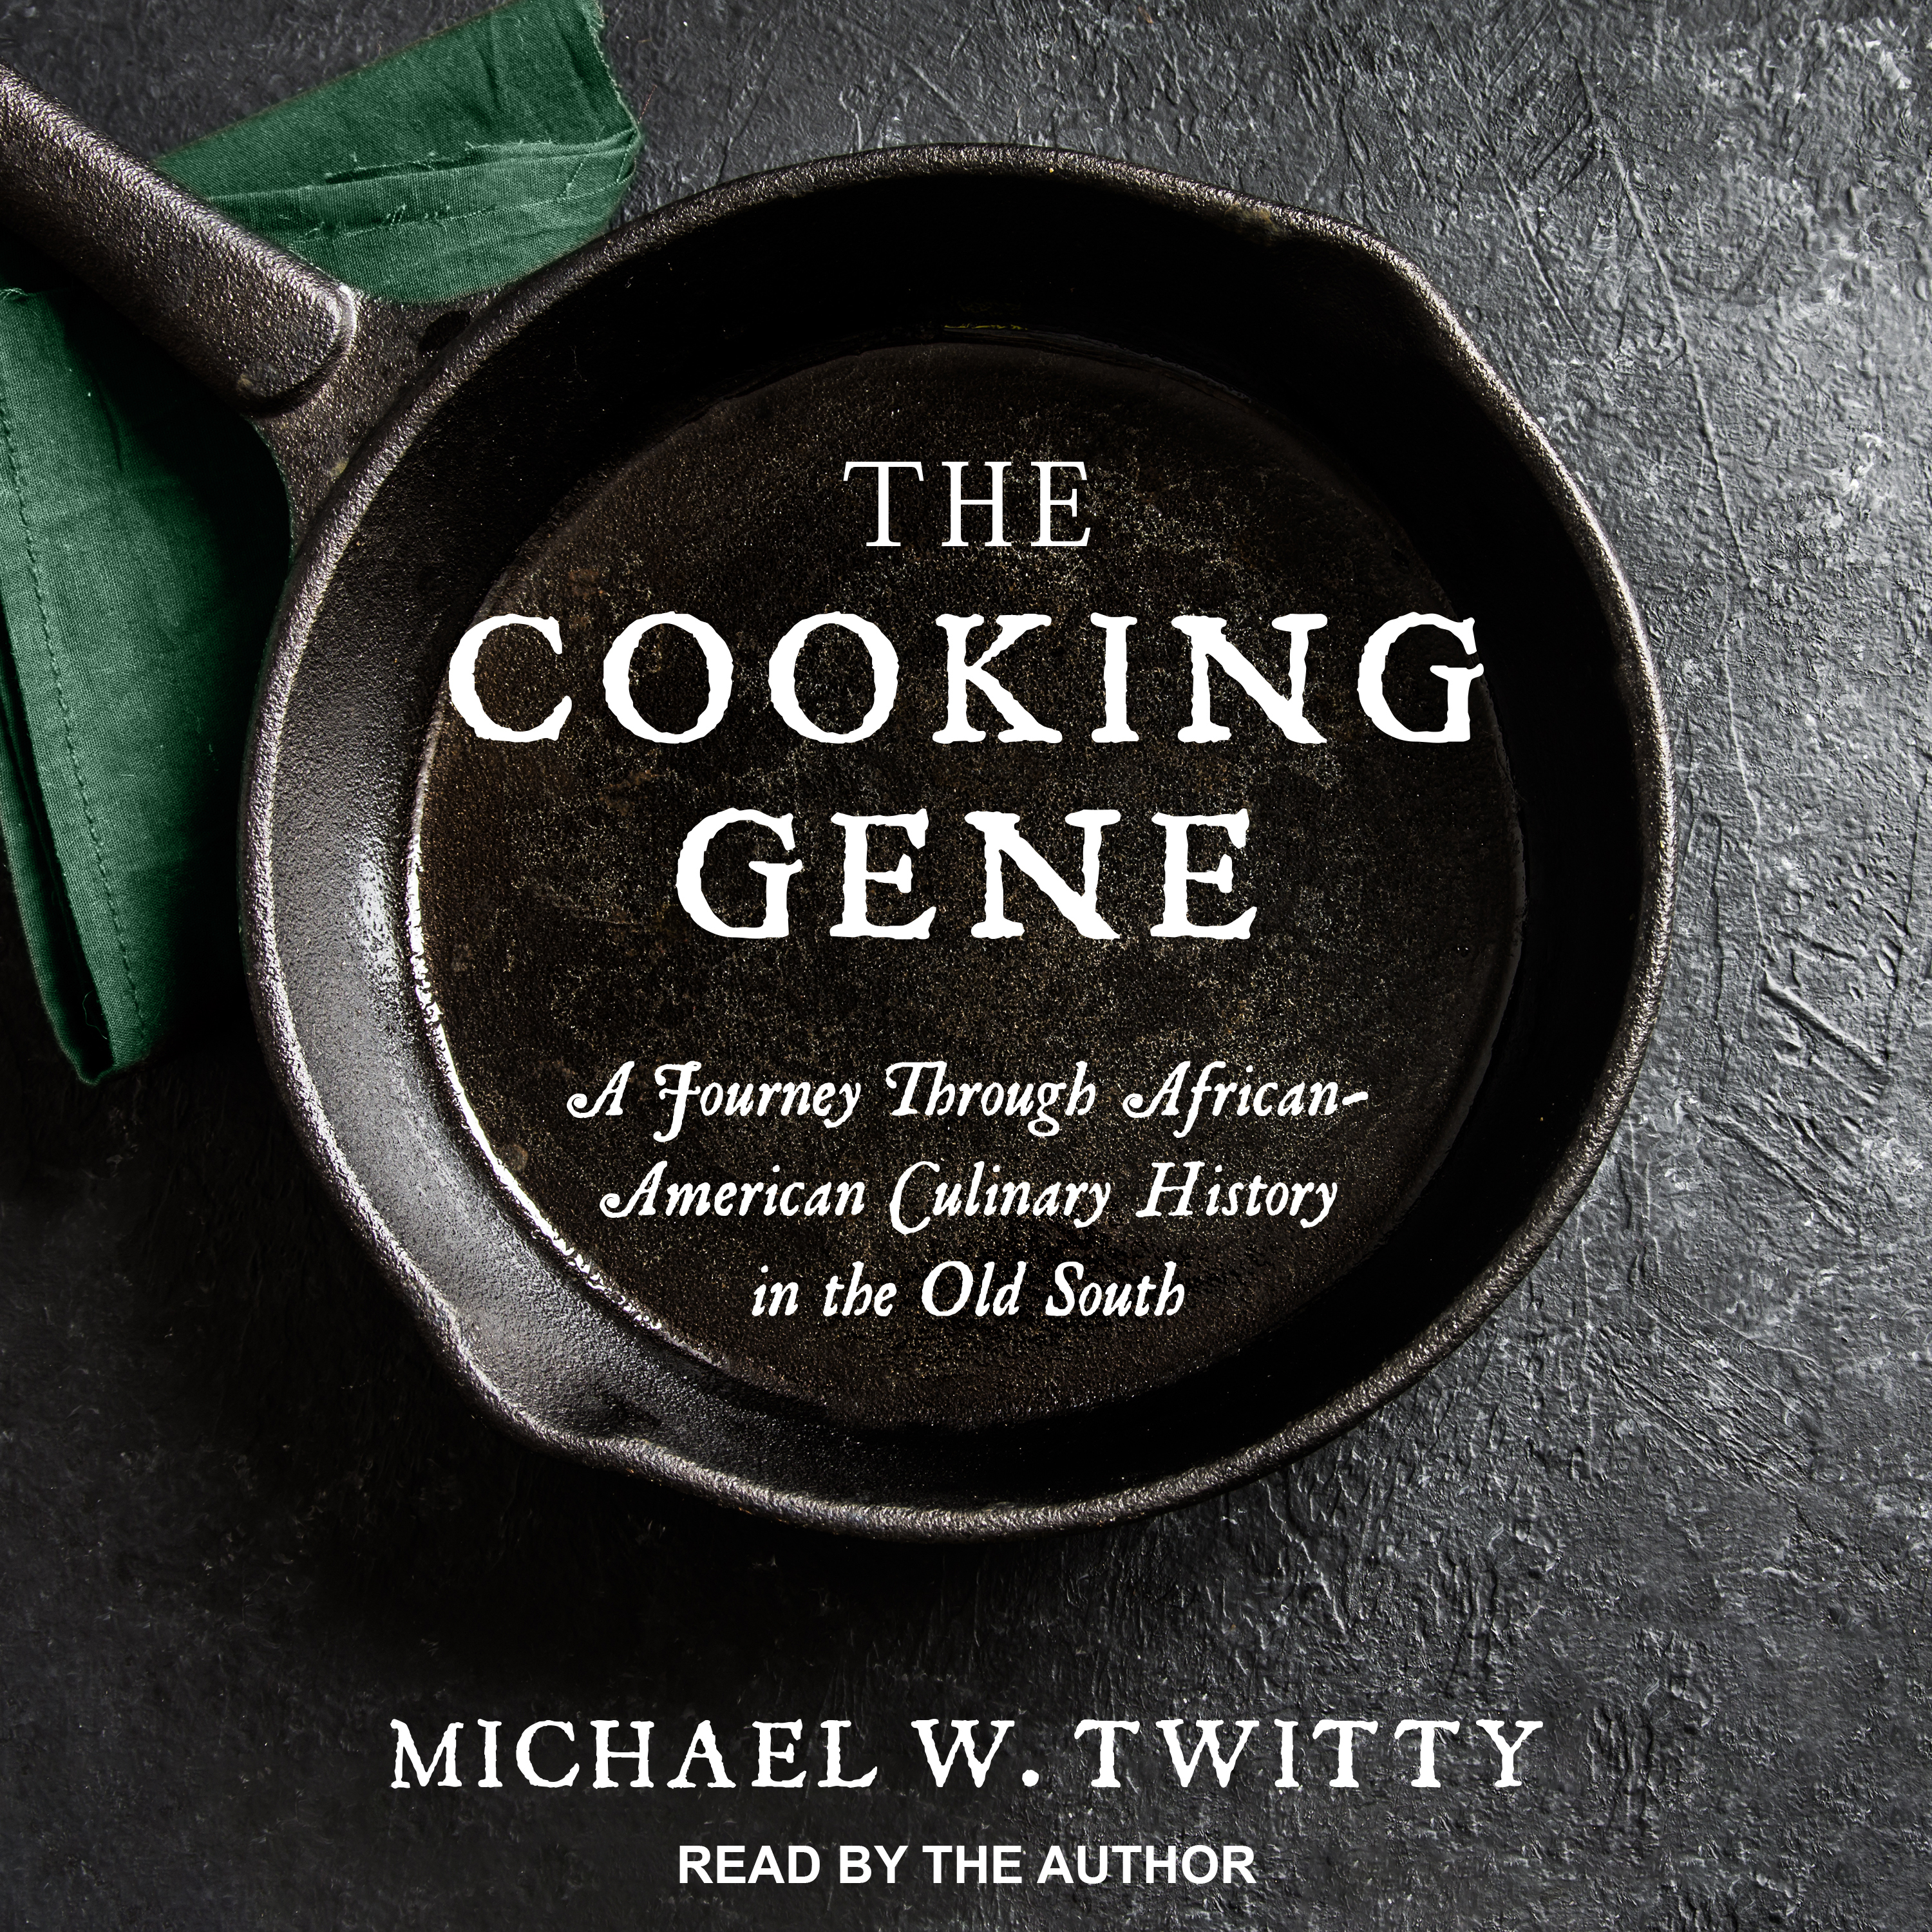 Printable The Cooking Gene: A Journey through African-American Culinary History in the Old South Audiobook Cover Art